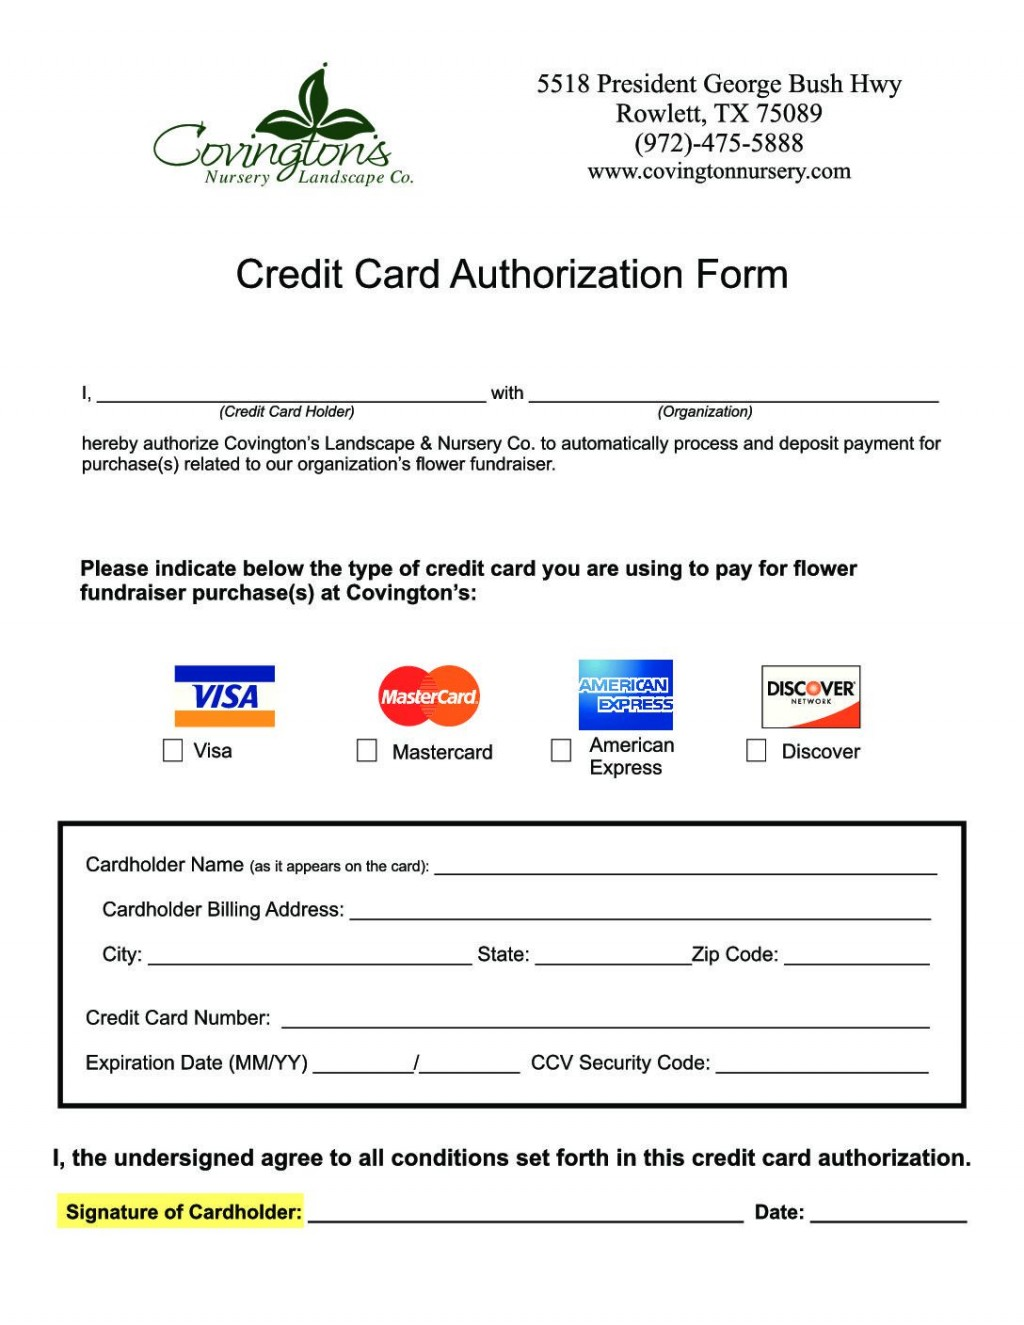 008 Marvelou Credit Card Authorization Template Photo  Form For Travel Agency Free Download Google DocLarge